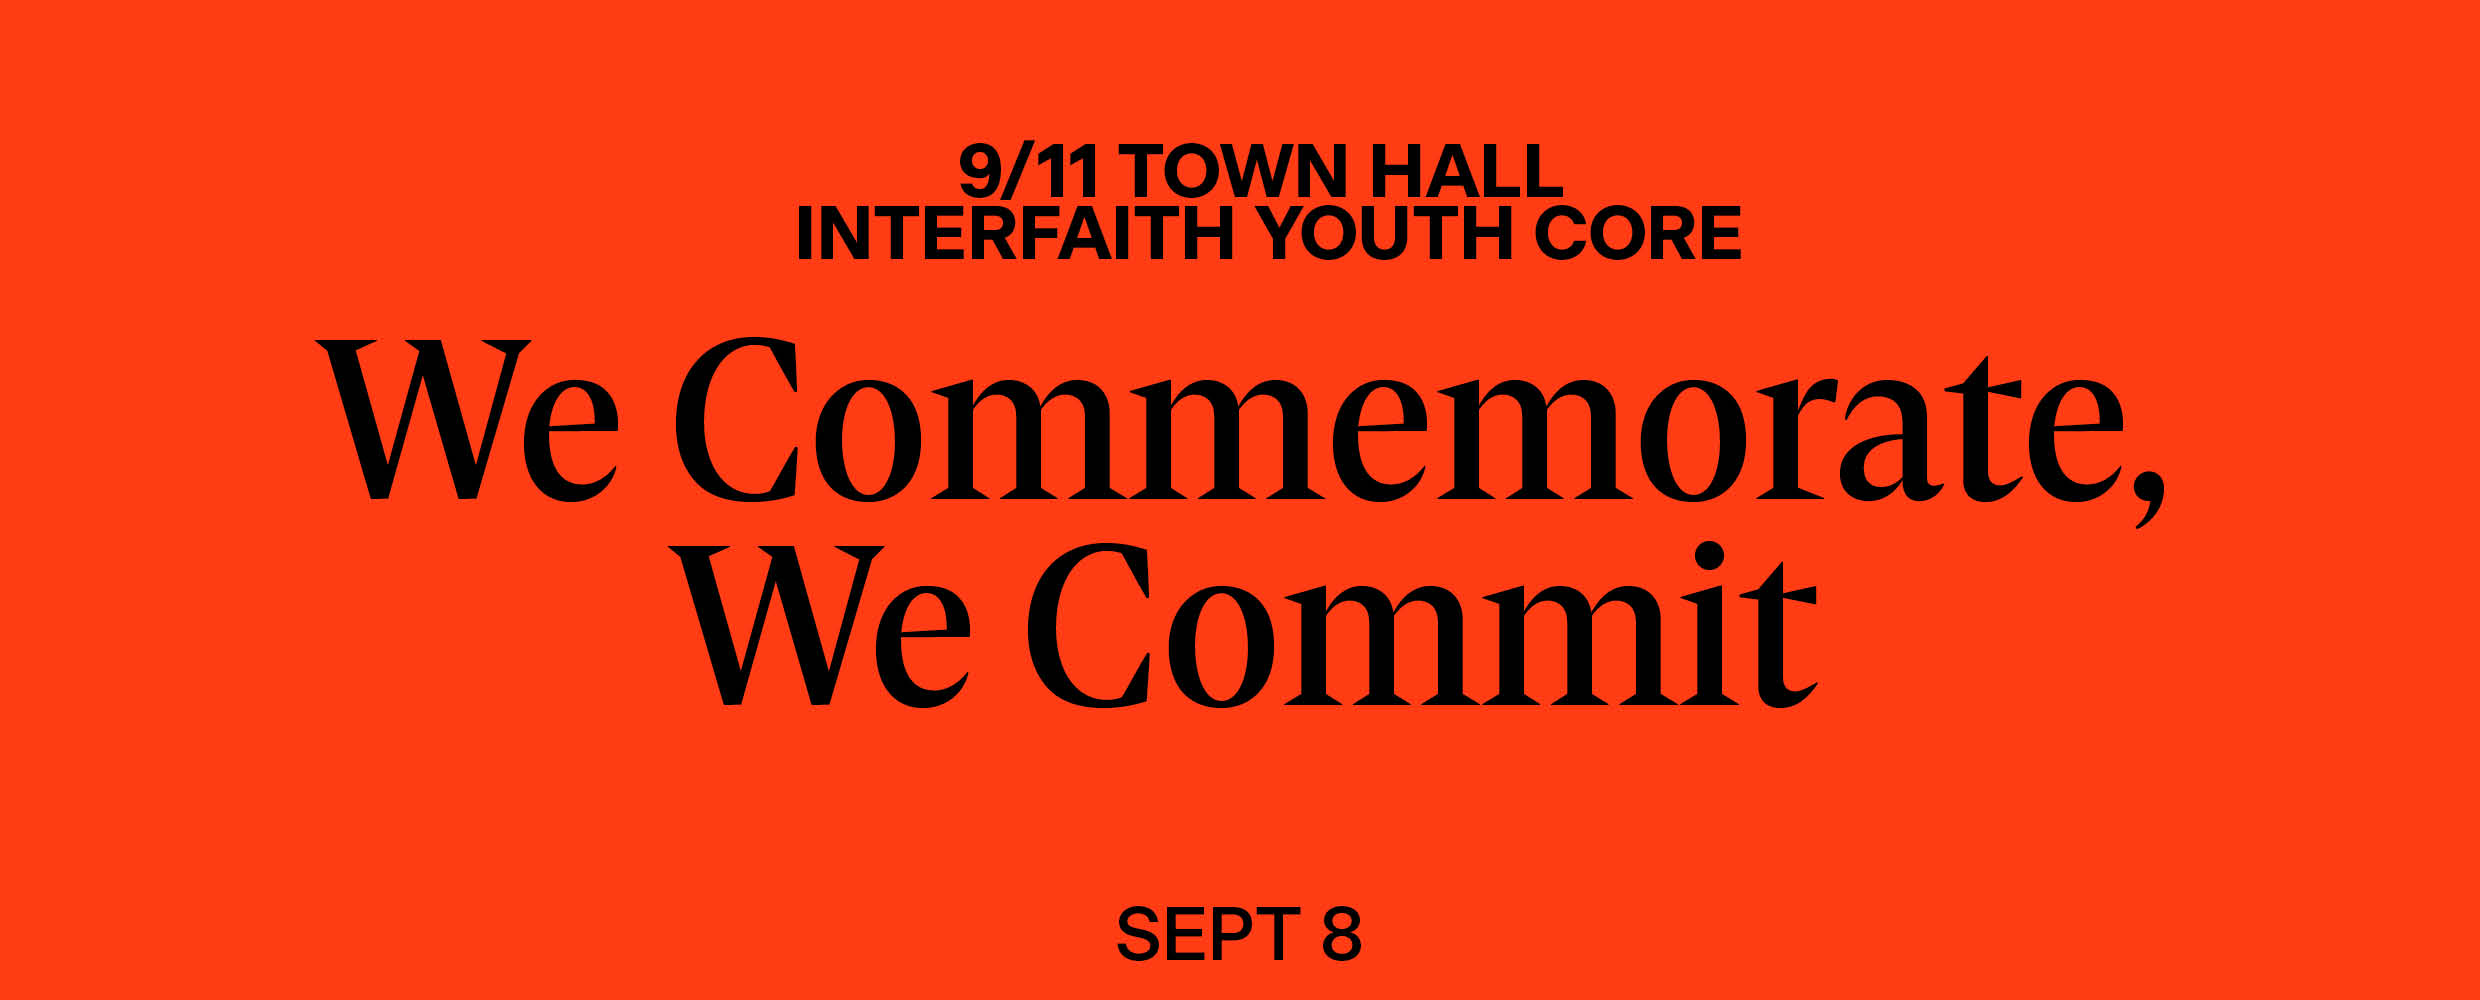 9/11 Town Hall: We Commemorate, We Commit